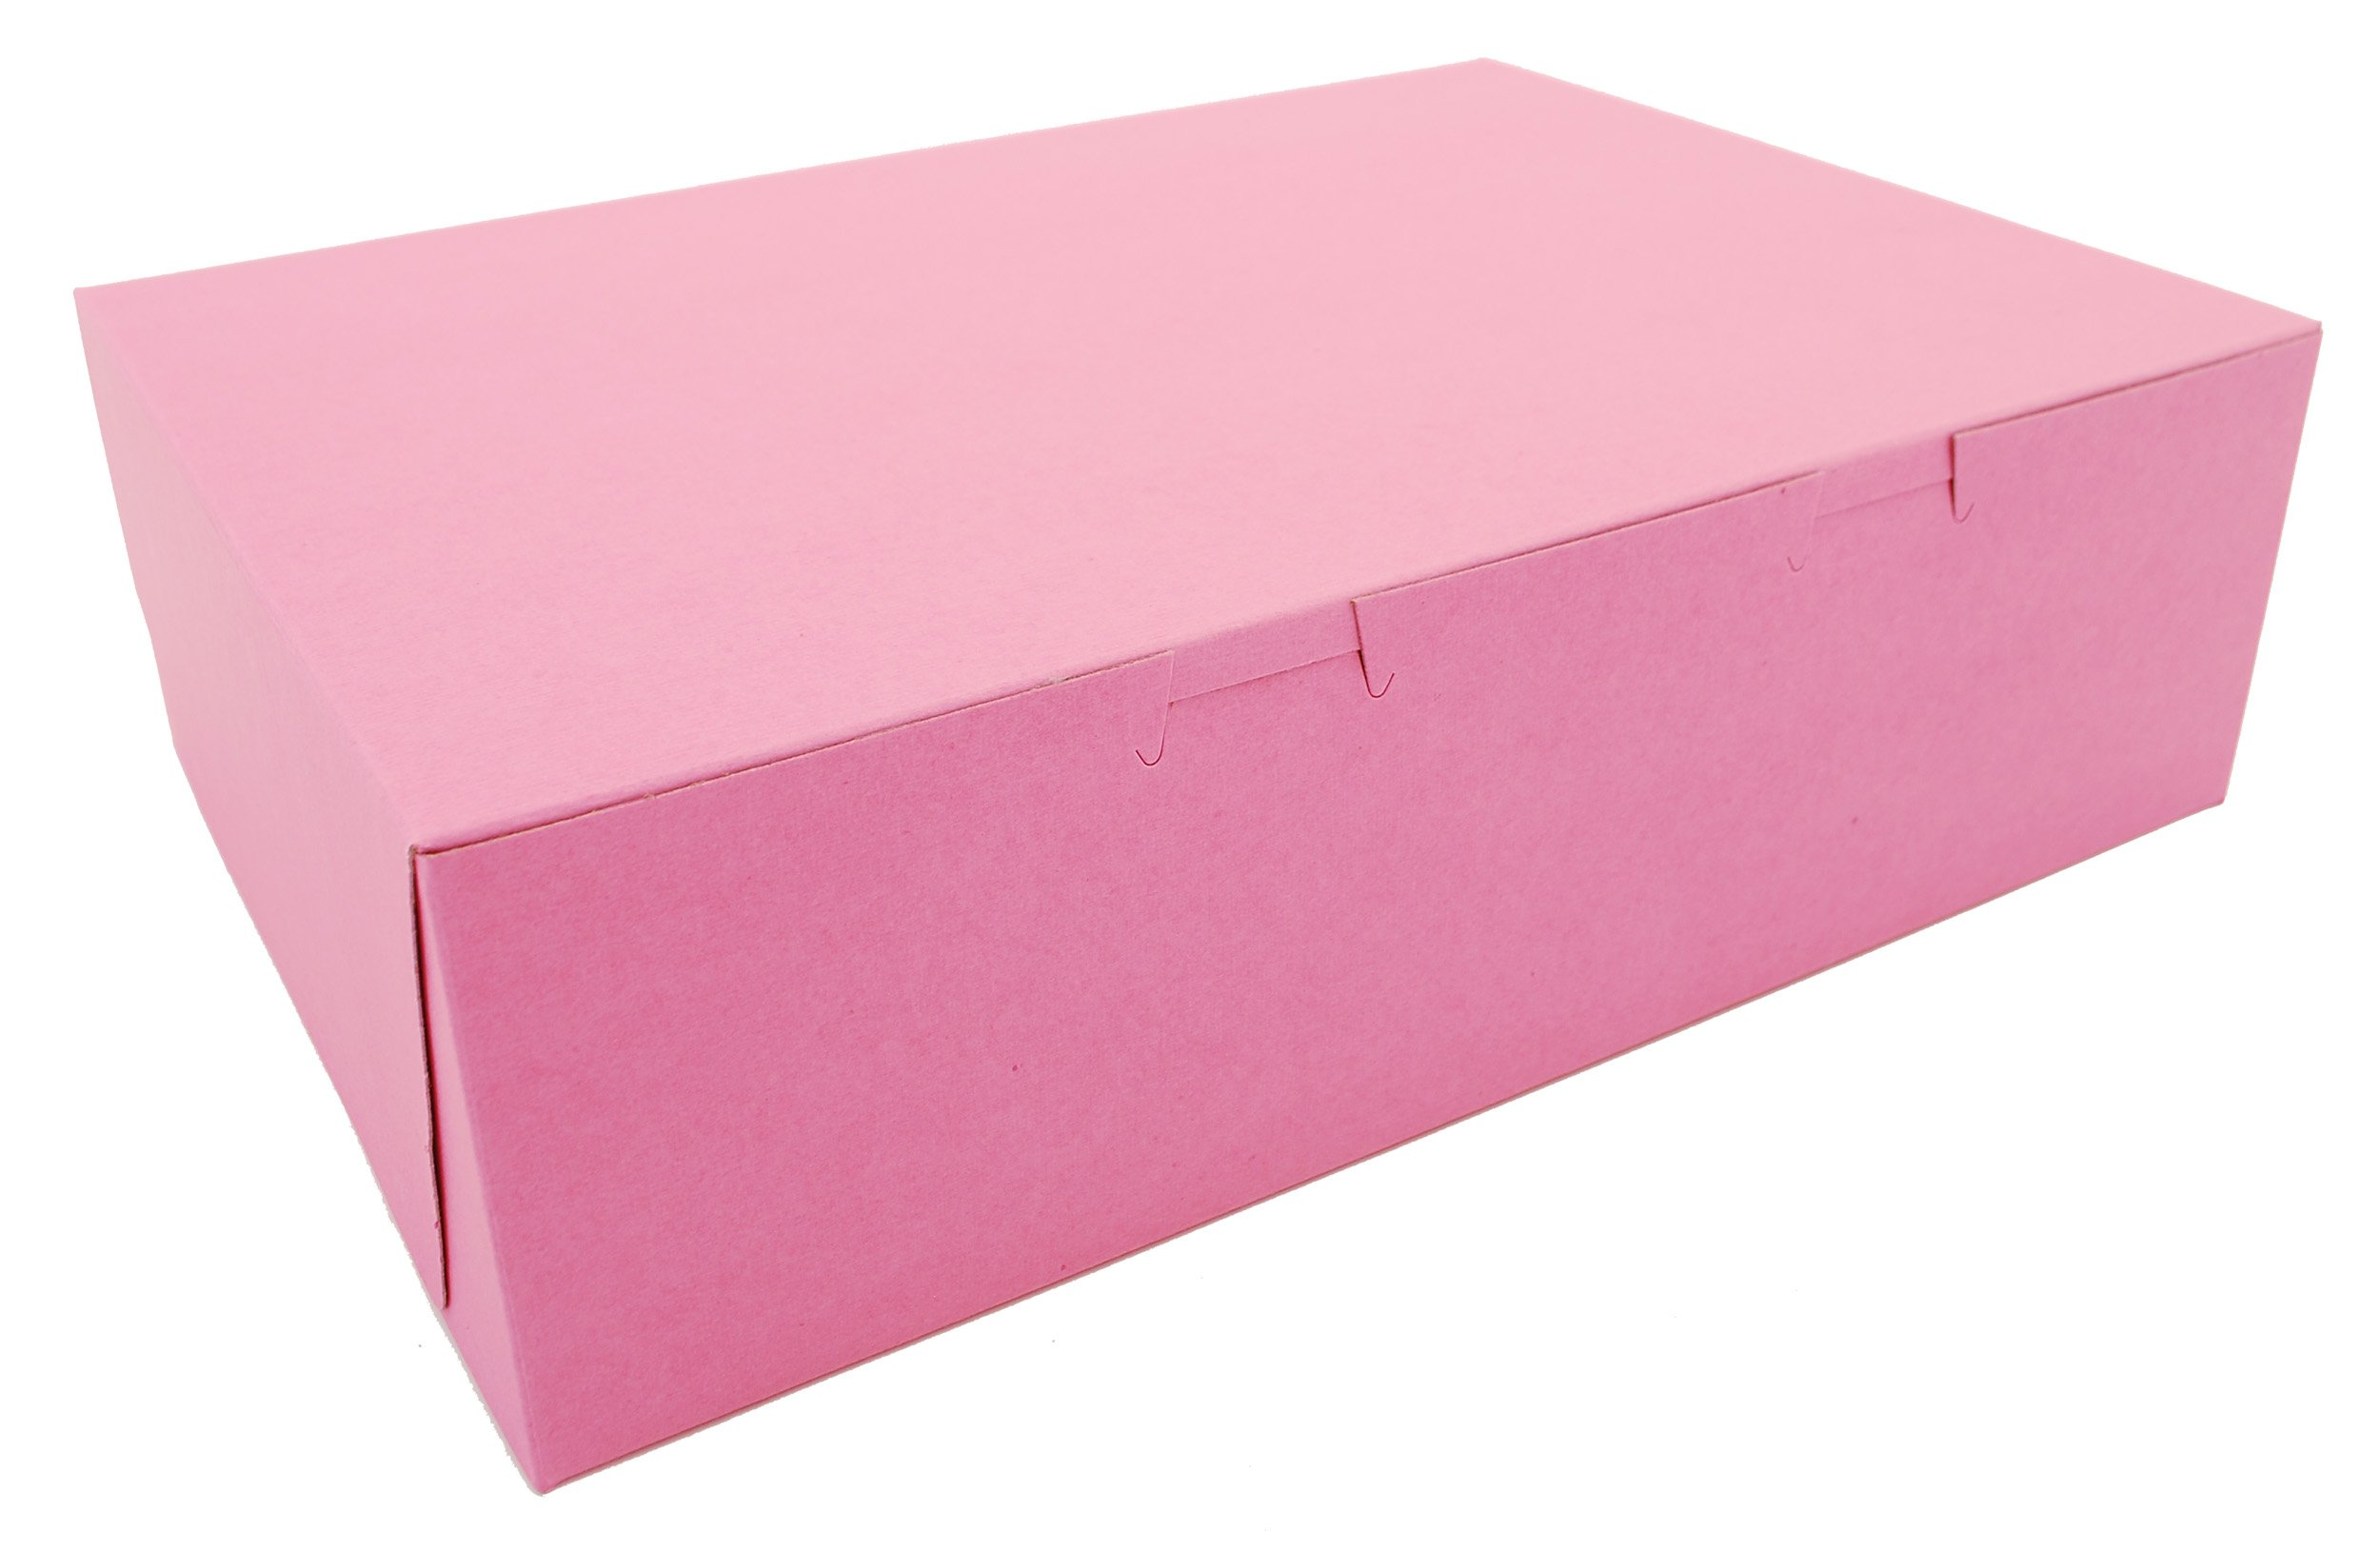 Southern Champion Tray 0890 Pink Paperboard Non-Window Lock-Corner Bakery Box, 14'' Length x 10'' Width x 4'' Height (Case of 100)